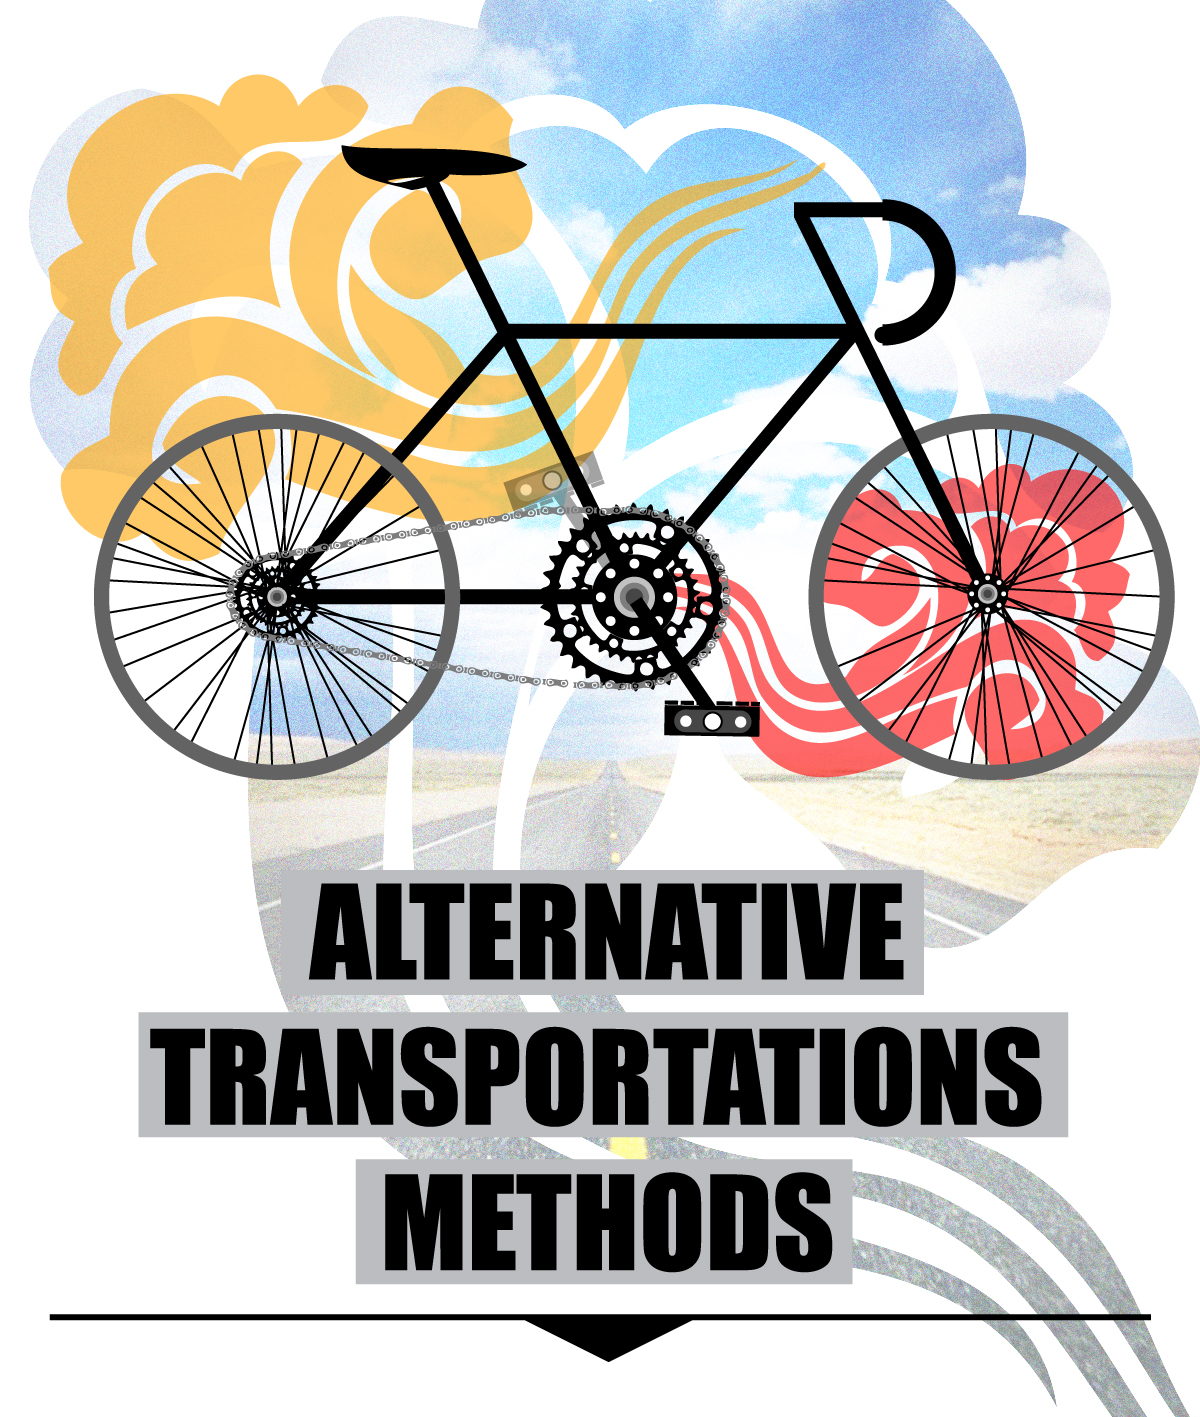 AlternativeTransportationsMethods